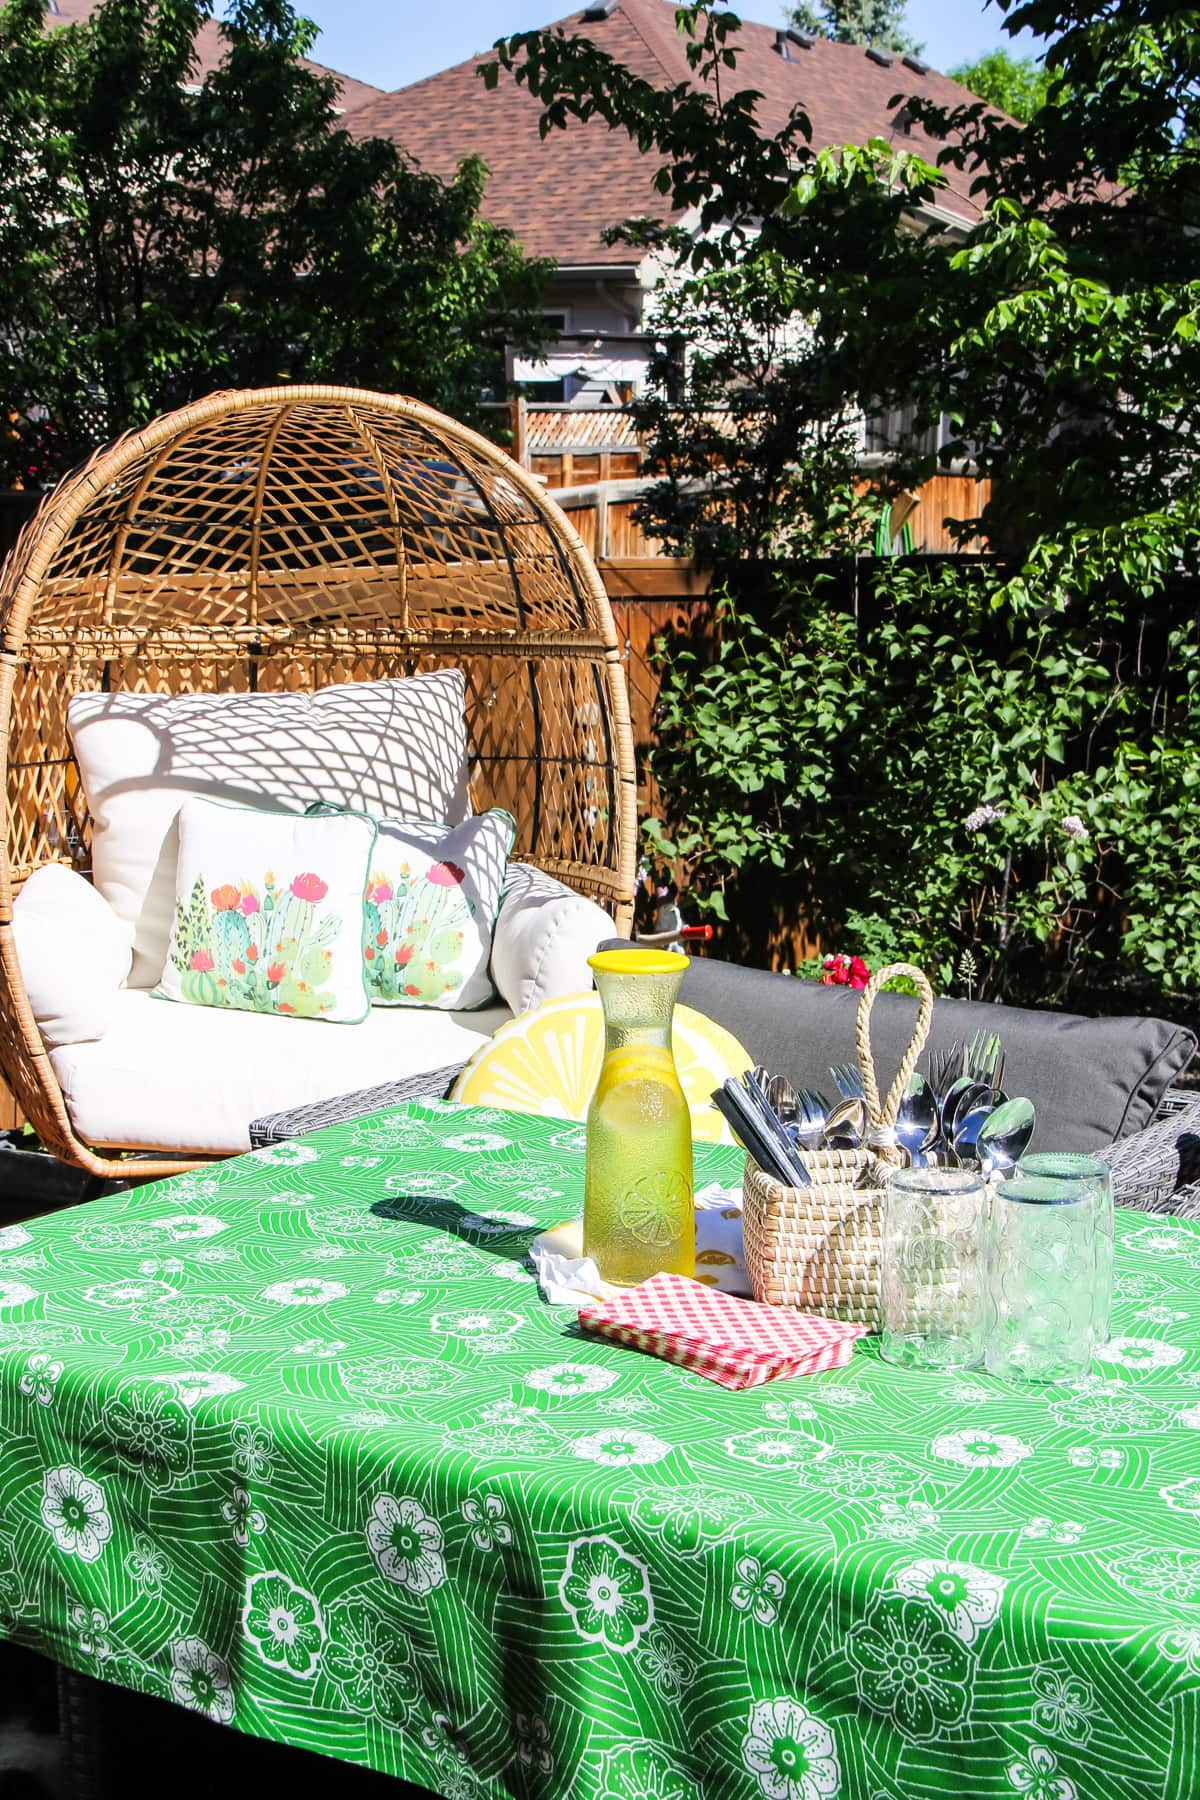 a table with a green and white flowered tablecloth, a jug of lemonade, red and white napkins, glasses and a container of cutlery. in the background is a wicker egg chair with pillows